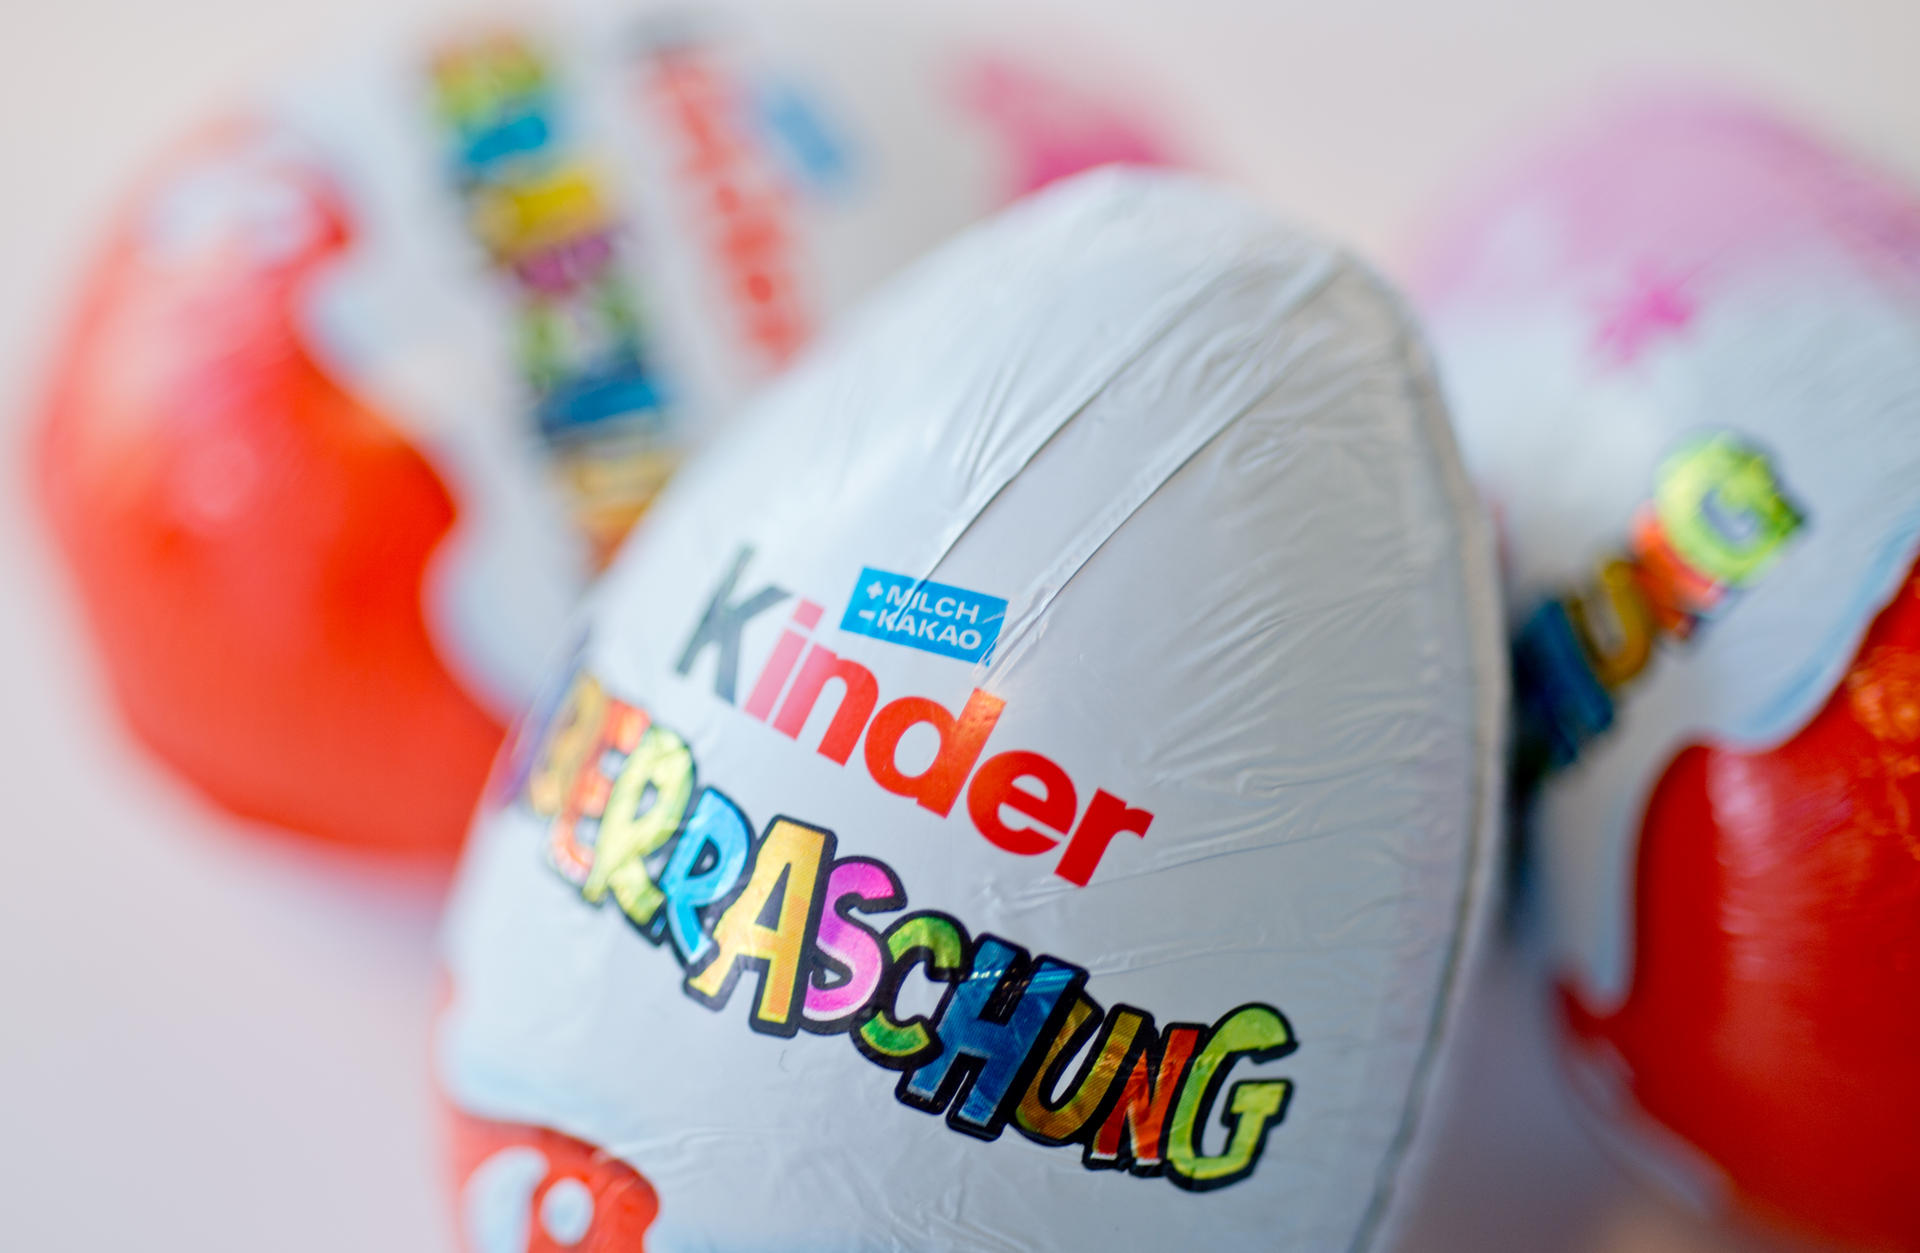 Outdoorküche Kinder Joy : Outdoorküche kinder joy: lidl online küche kinder led